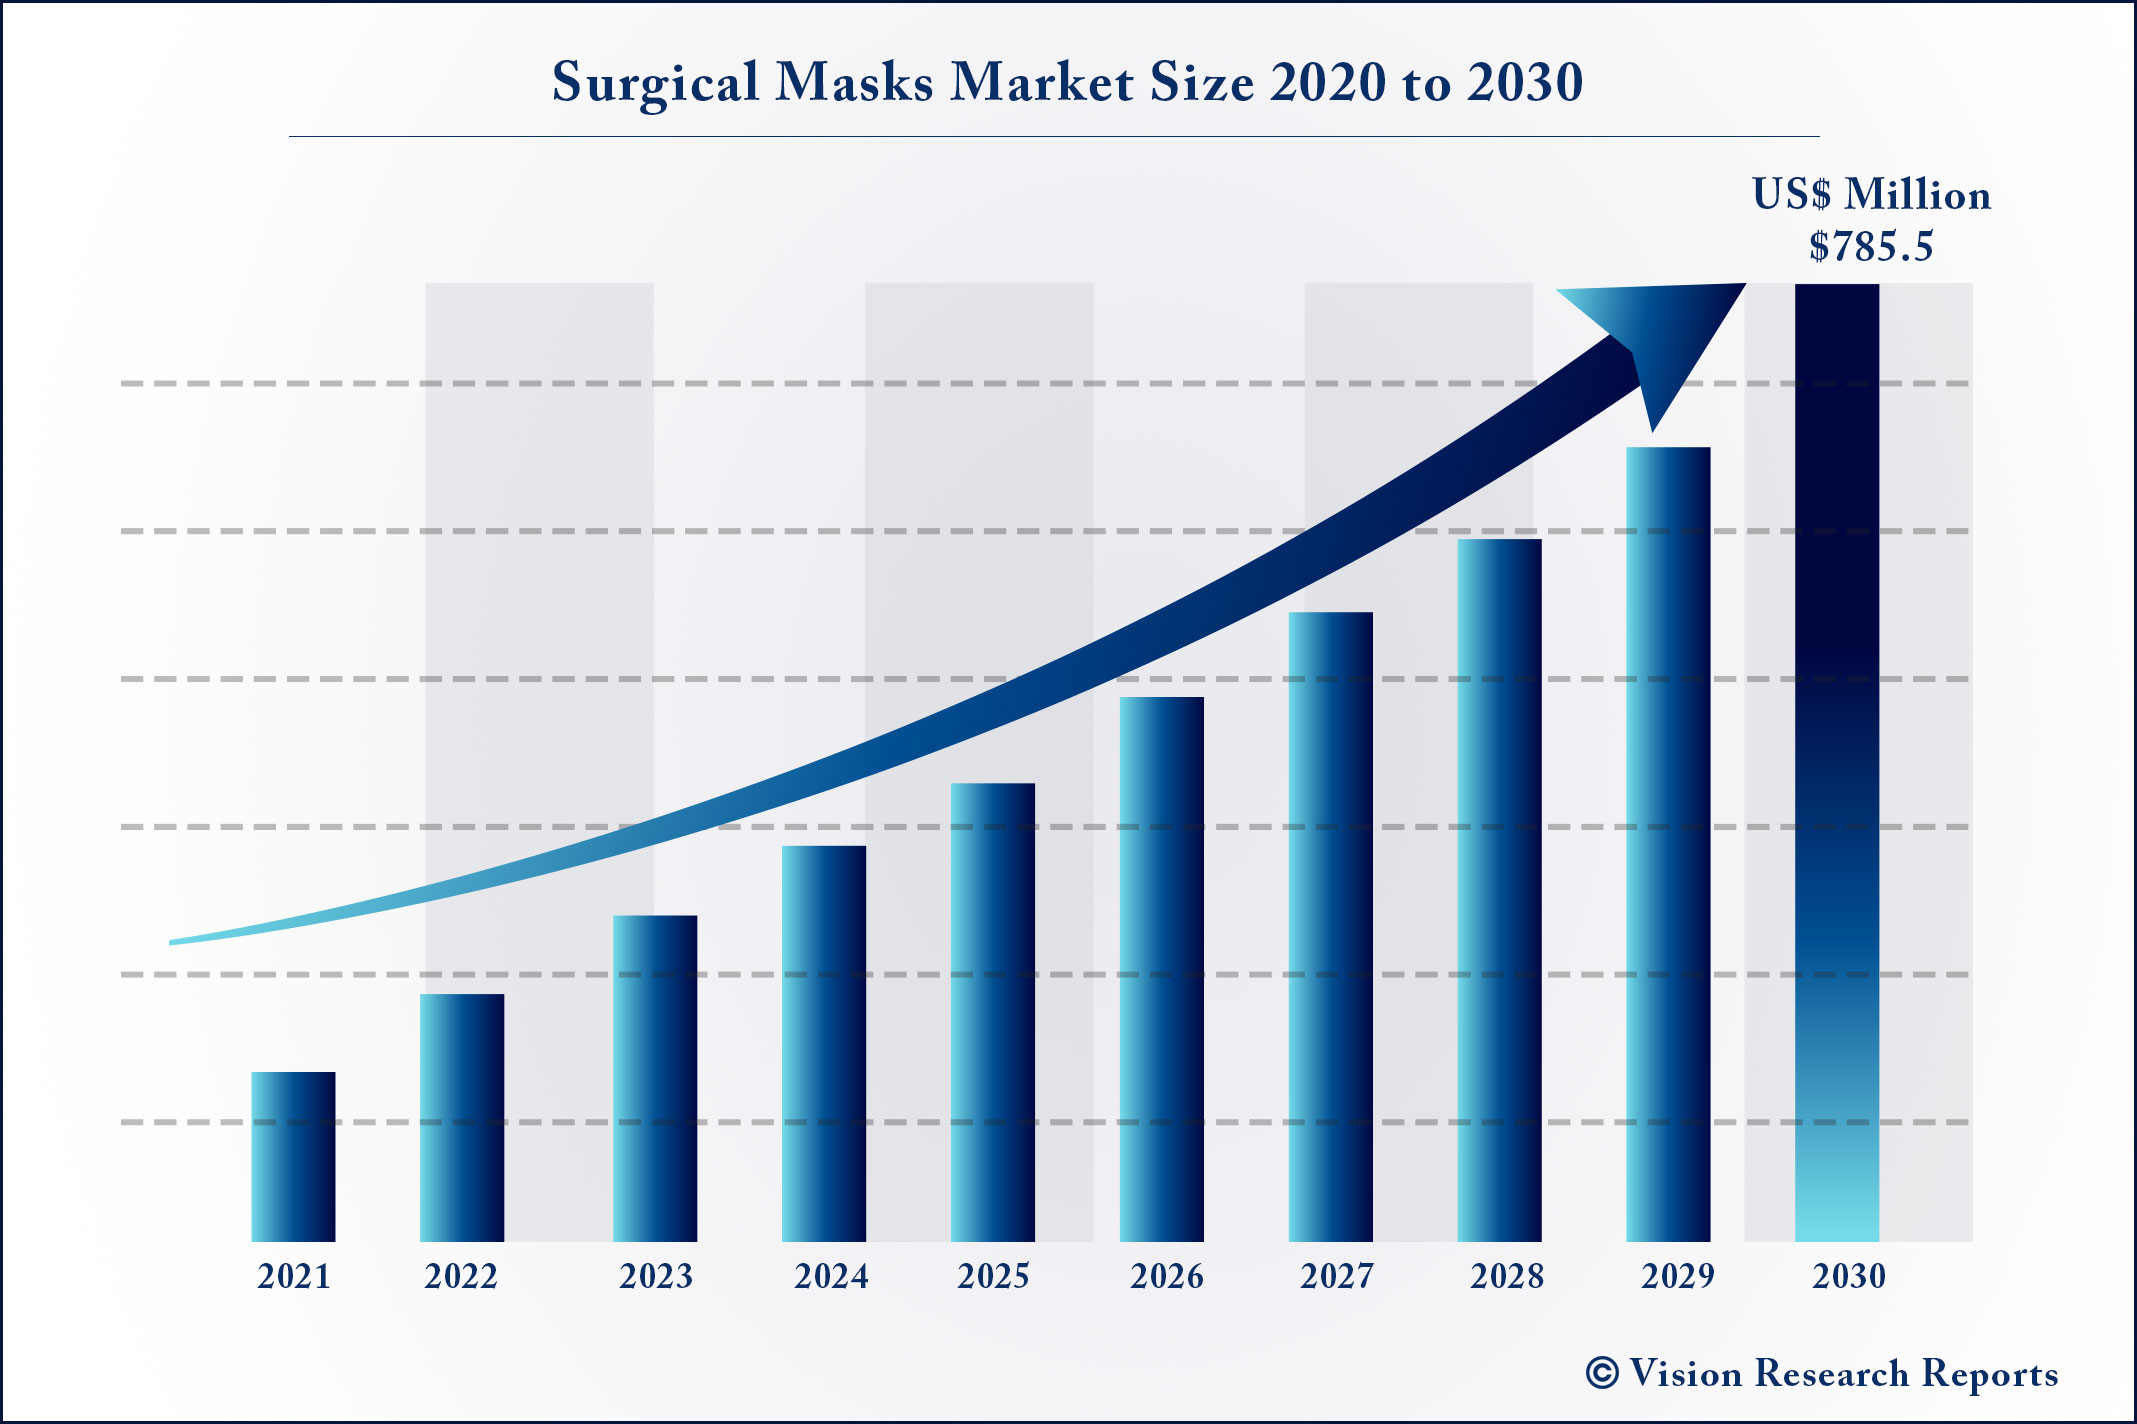 Surgical Masks Market Size 2020 to 2030